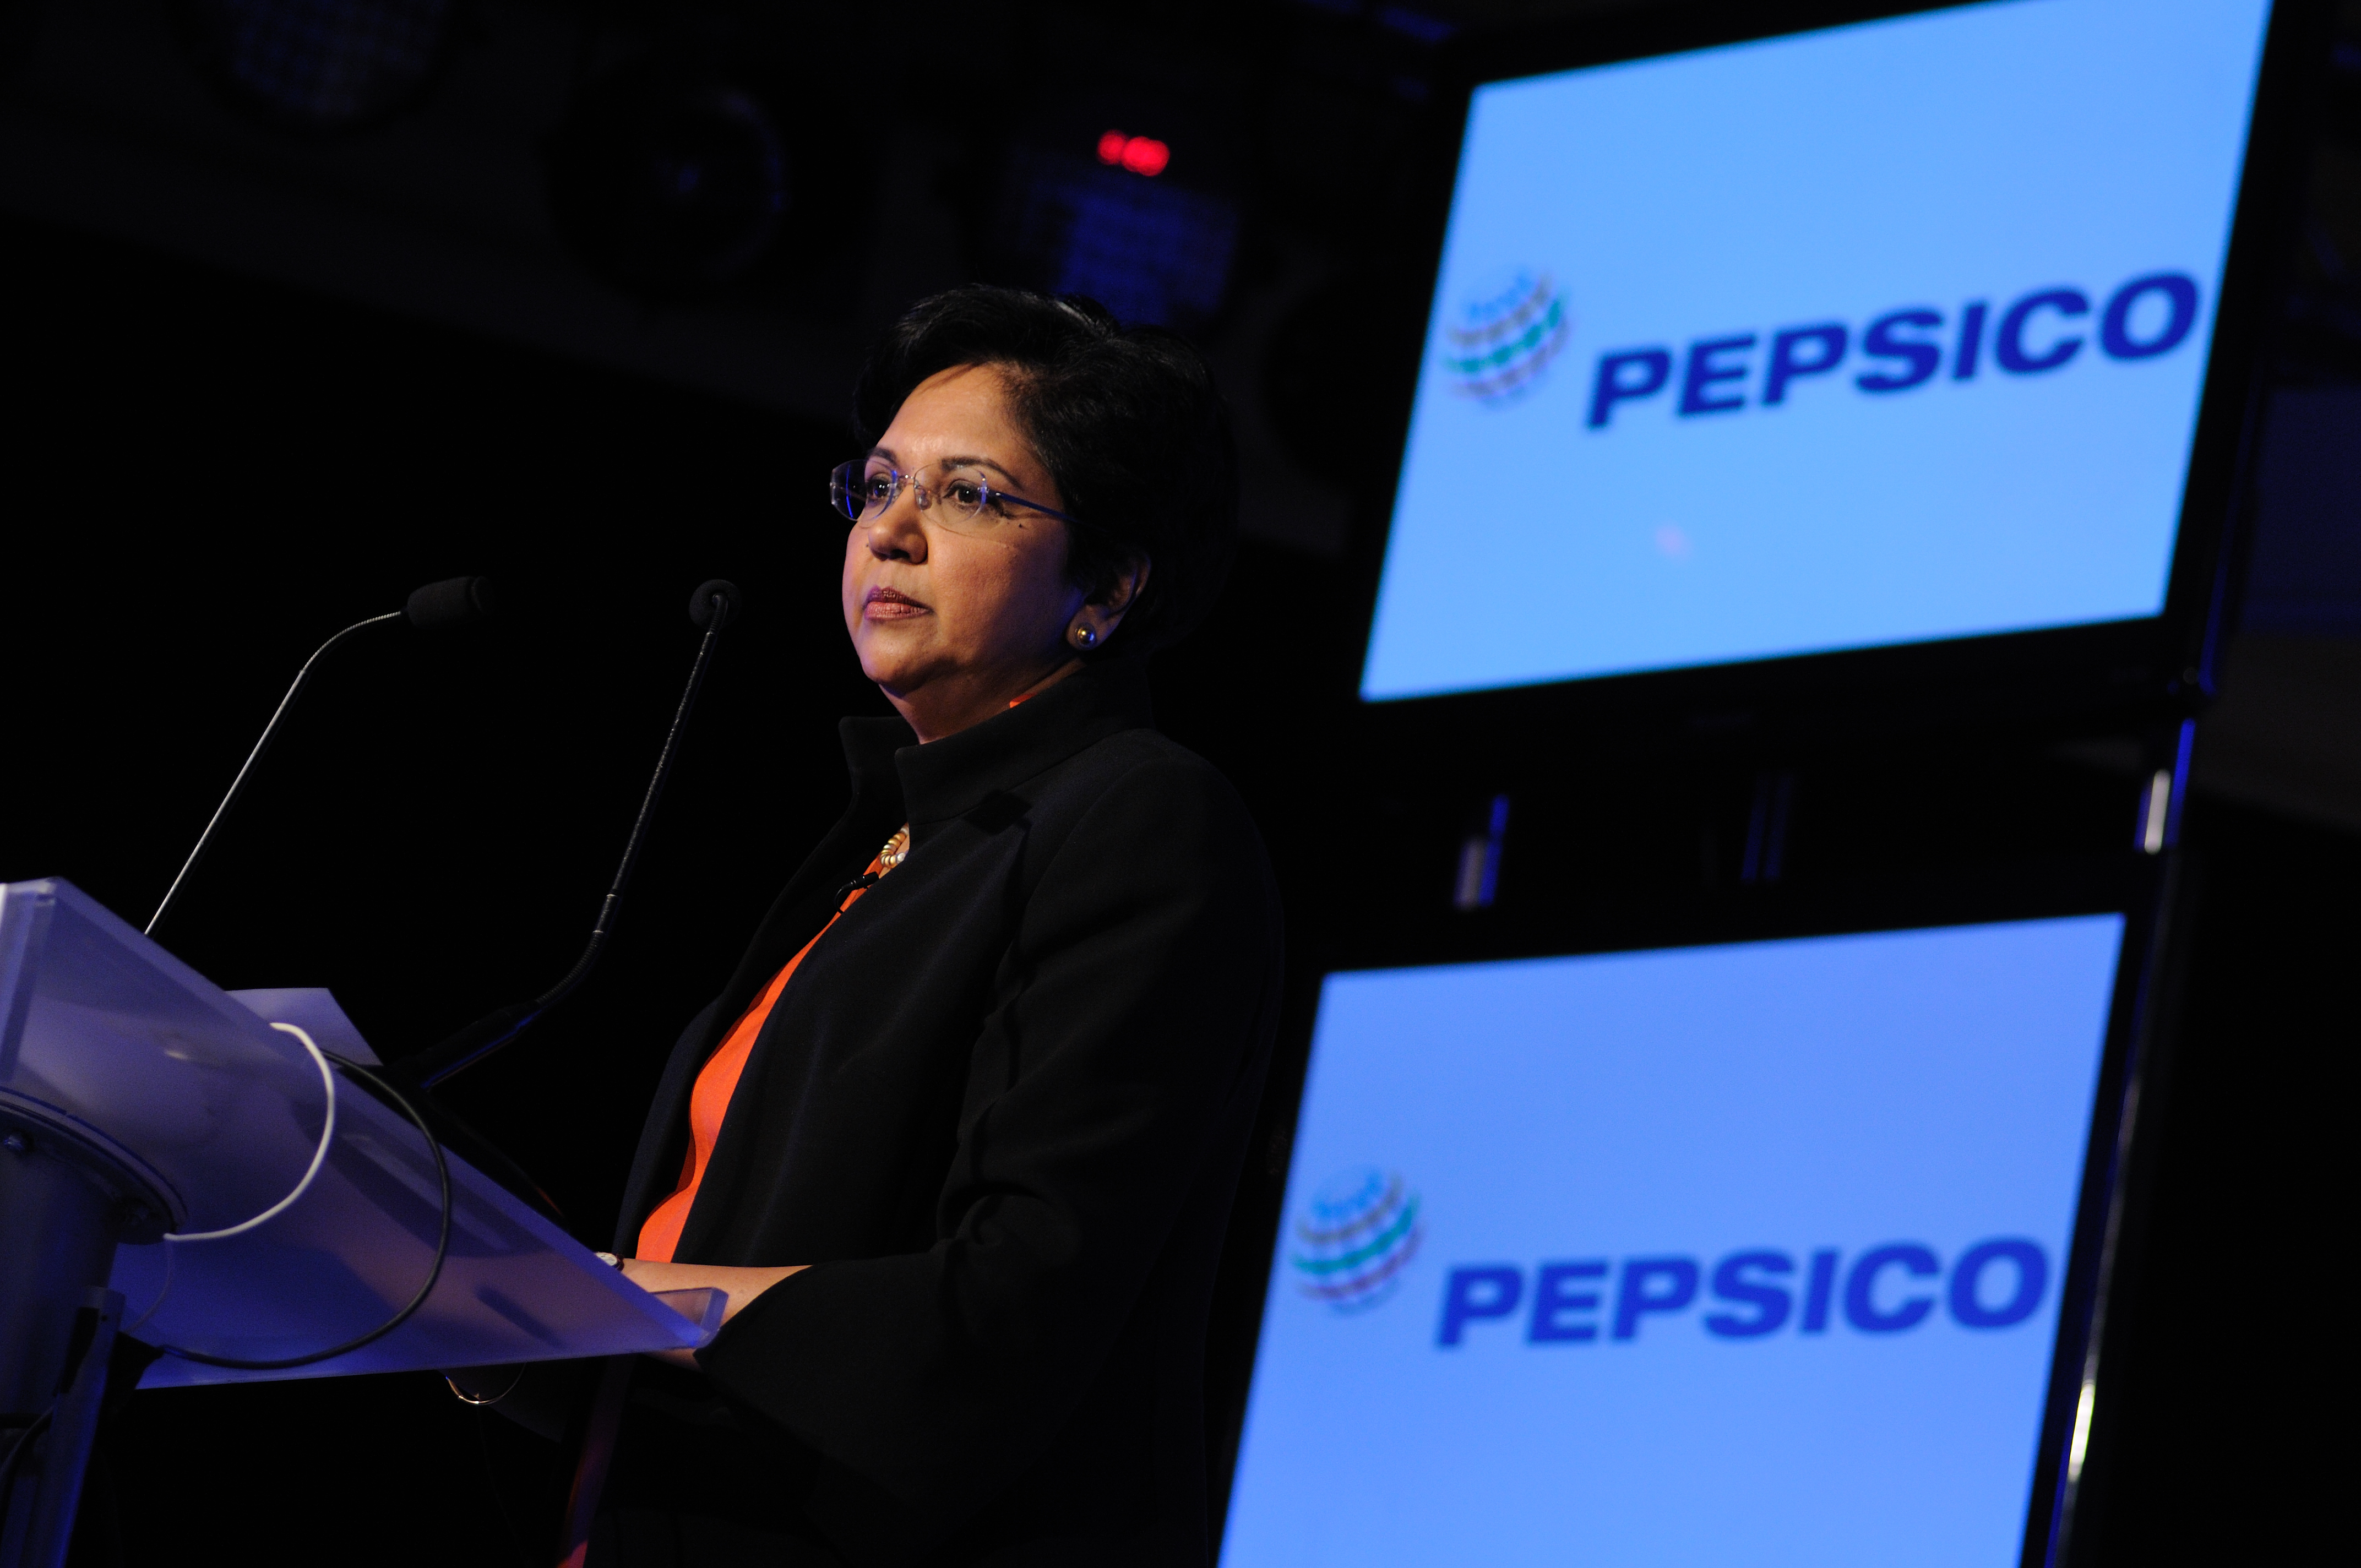 Profile Of PepsiCo Chairperson and CEO Indira Nooyi,